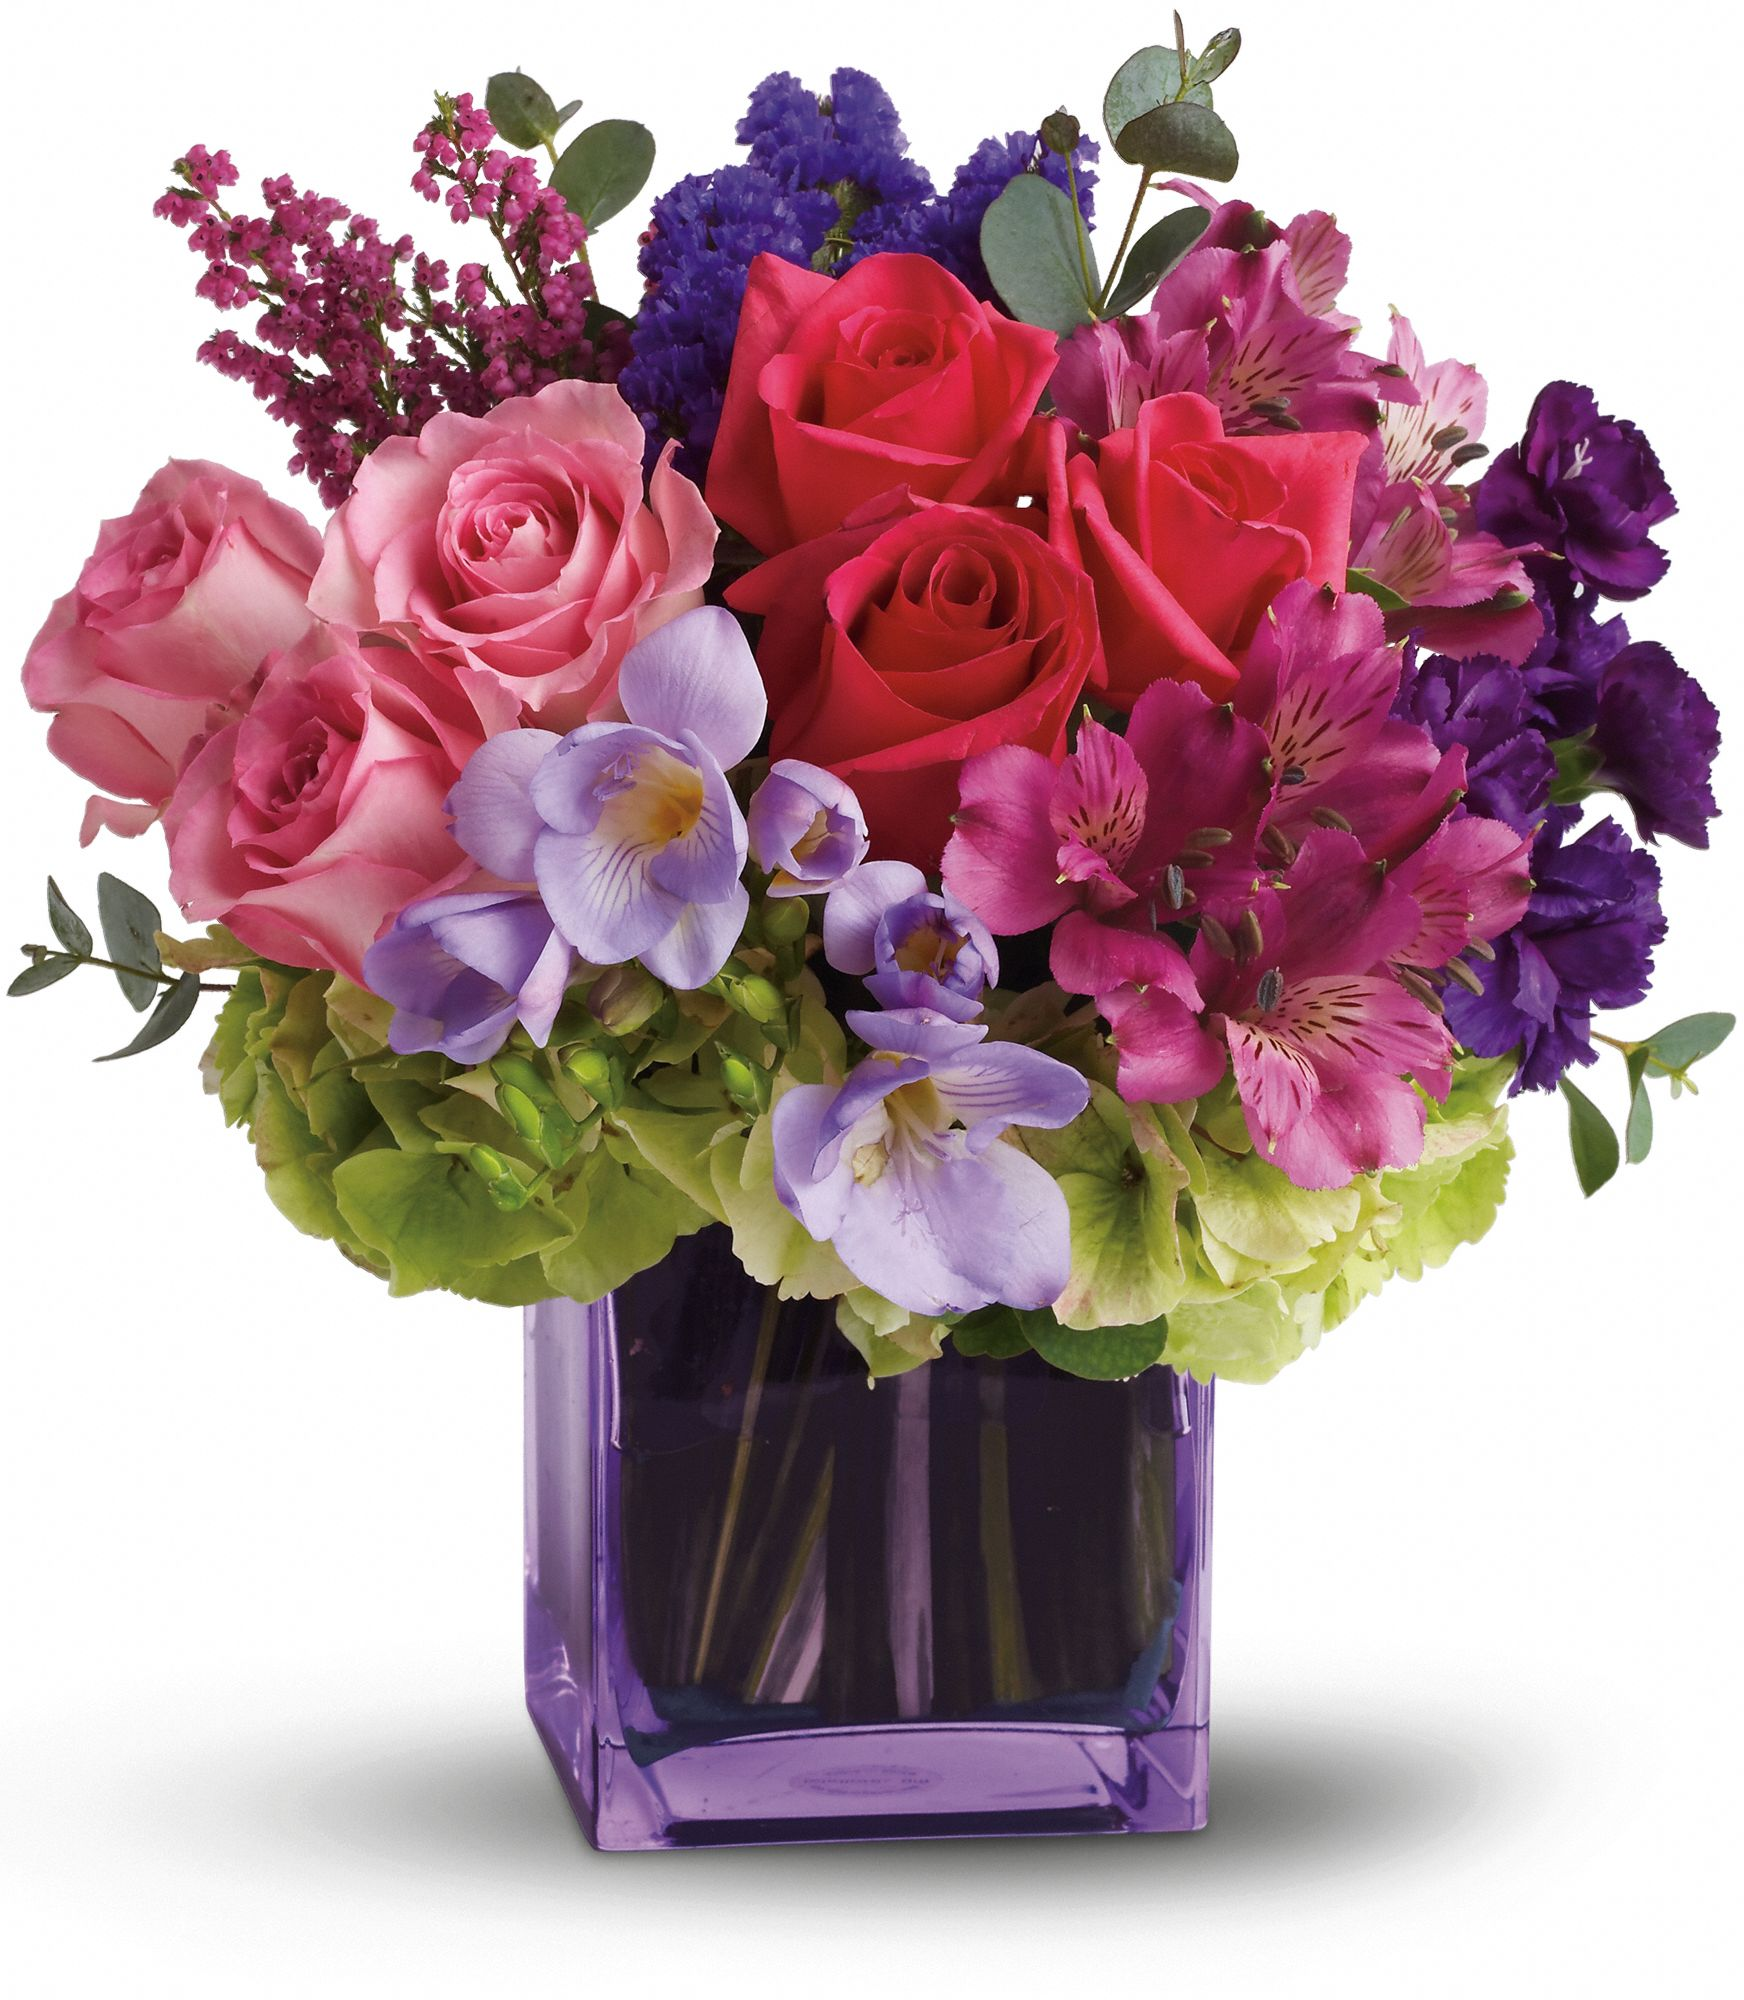 exquisite beauty flowers, exquisite beauty flower bouquet, Beautiful flower